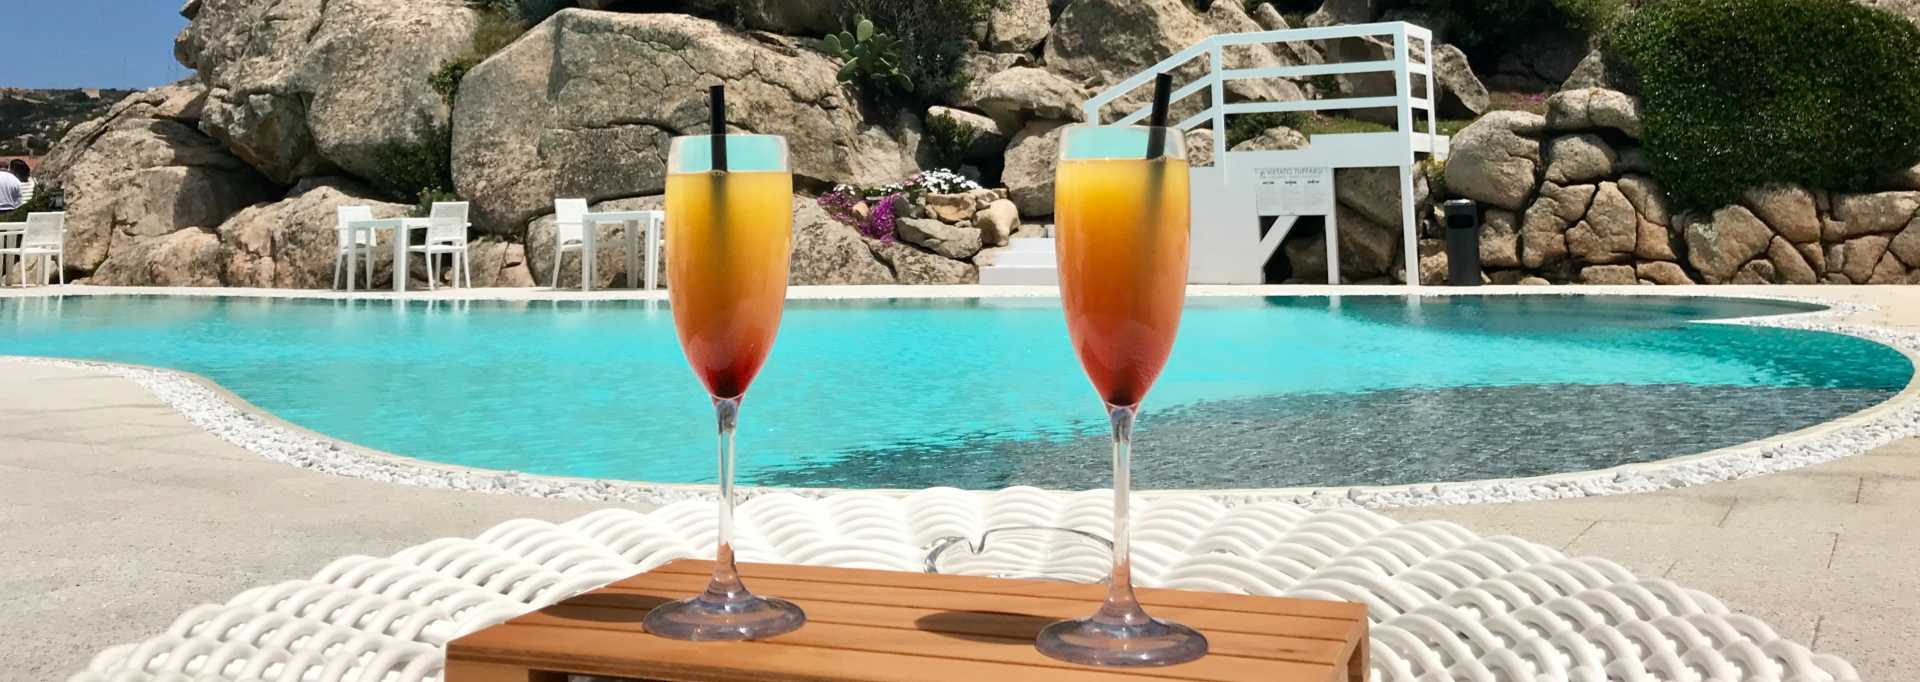 alcohol drinks beside a pool in the caribbean